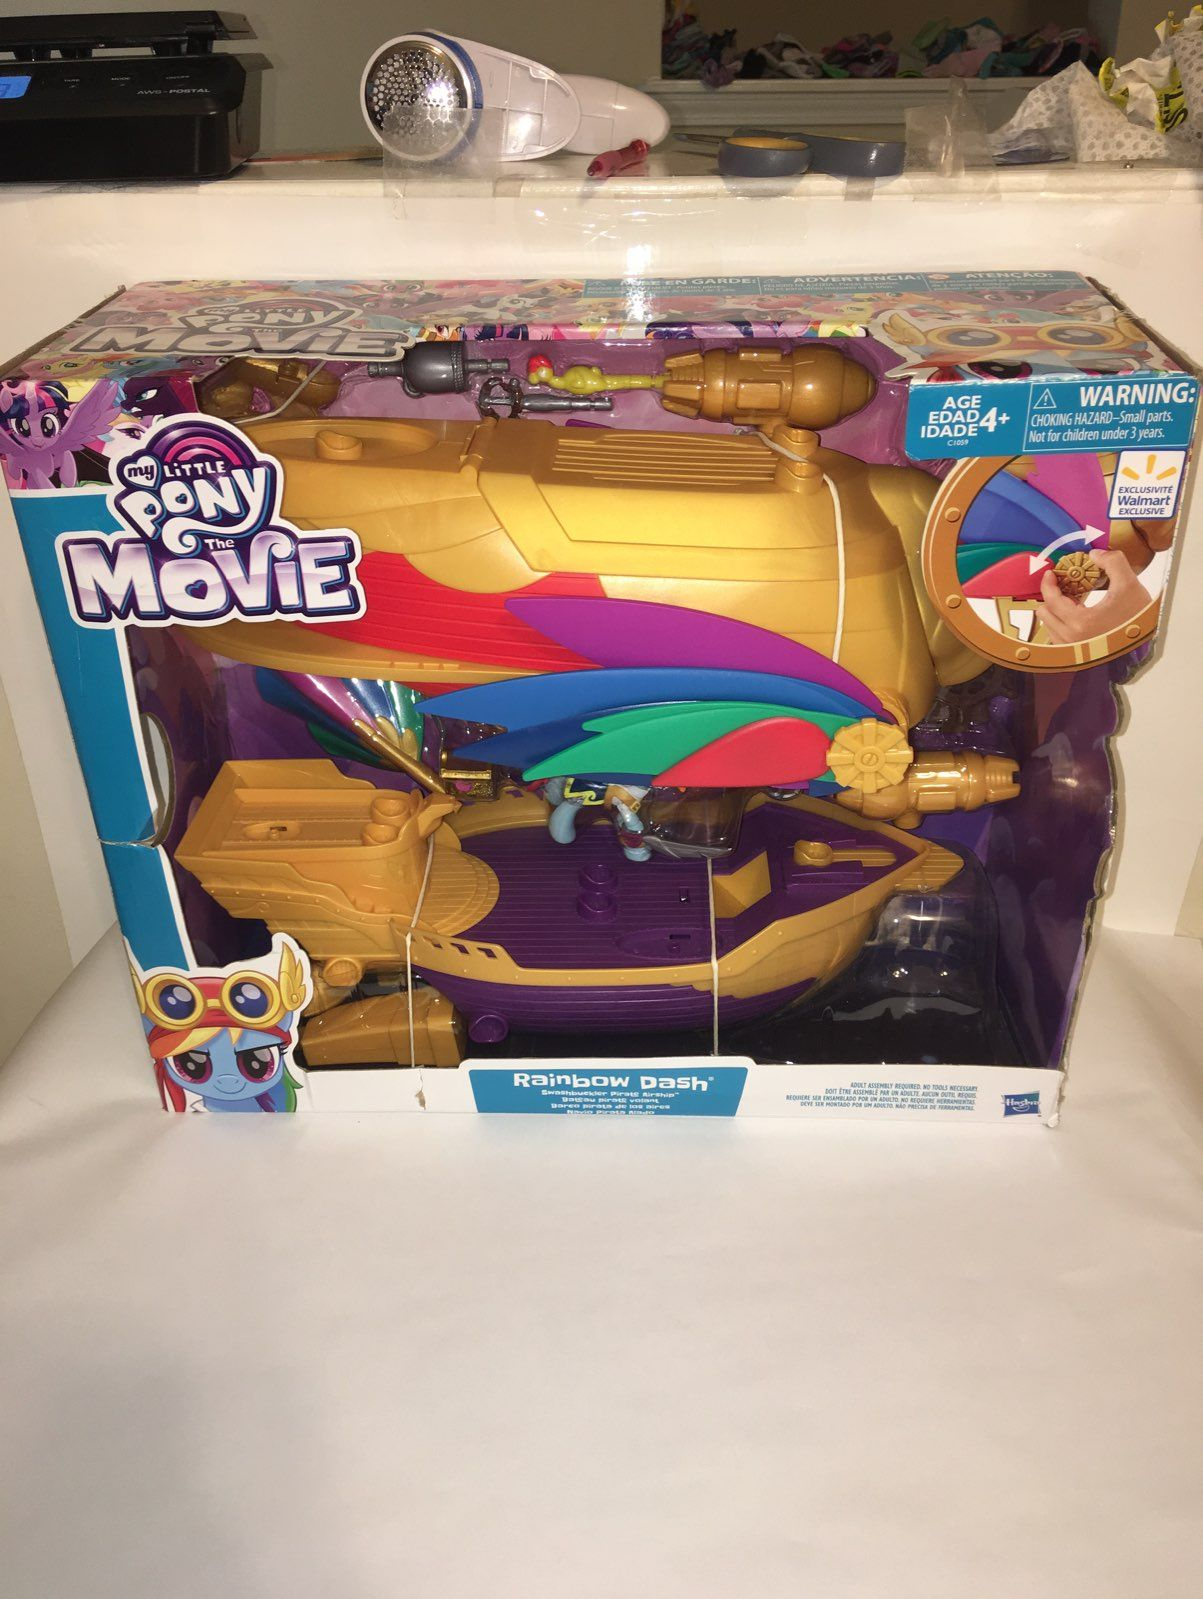 The Movie Swashbuckler Pirate Airship My Little Pony Rainbow Dash